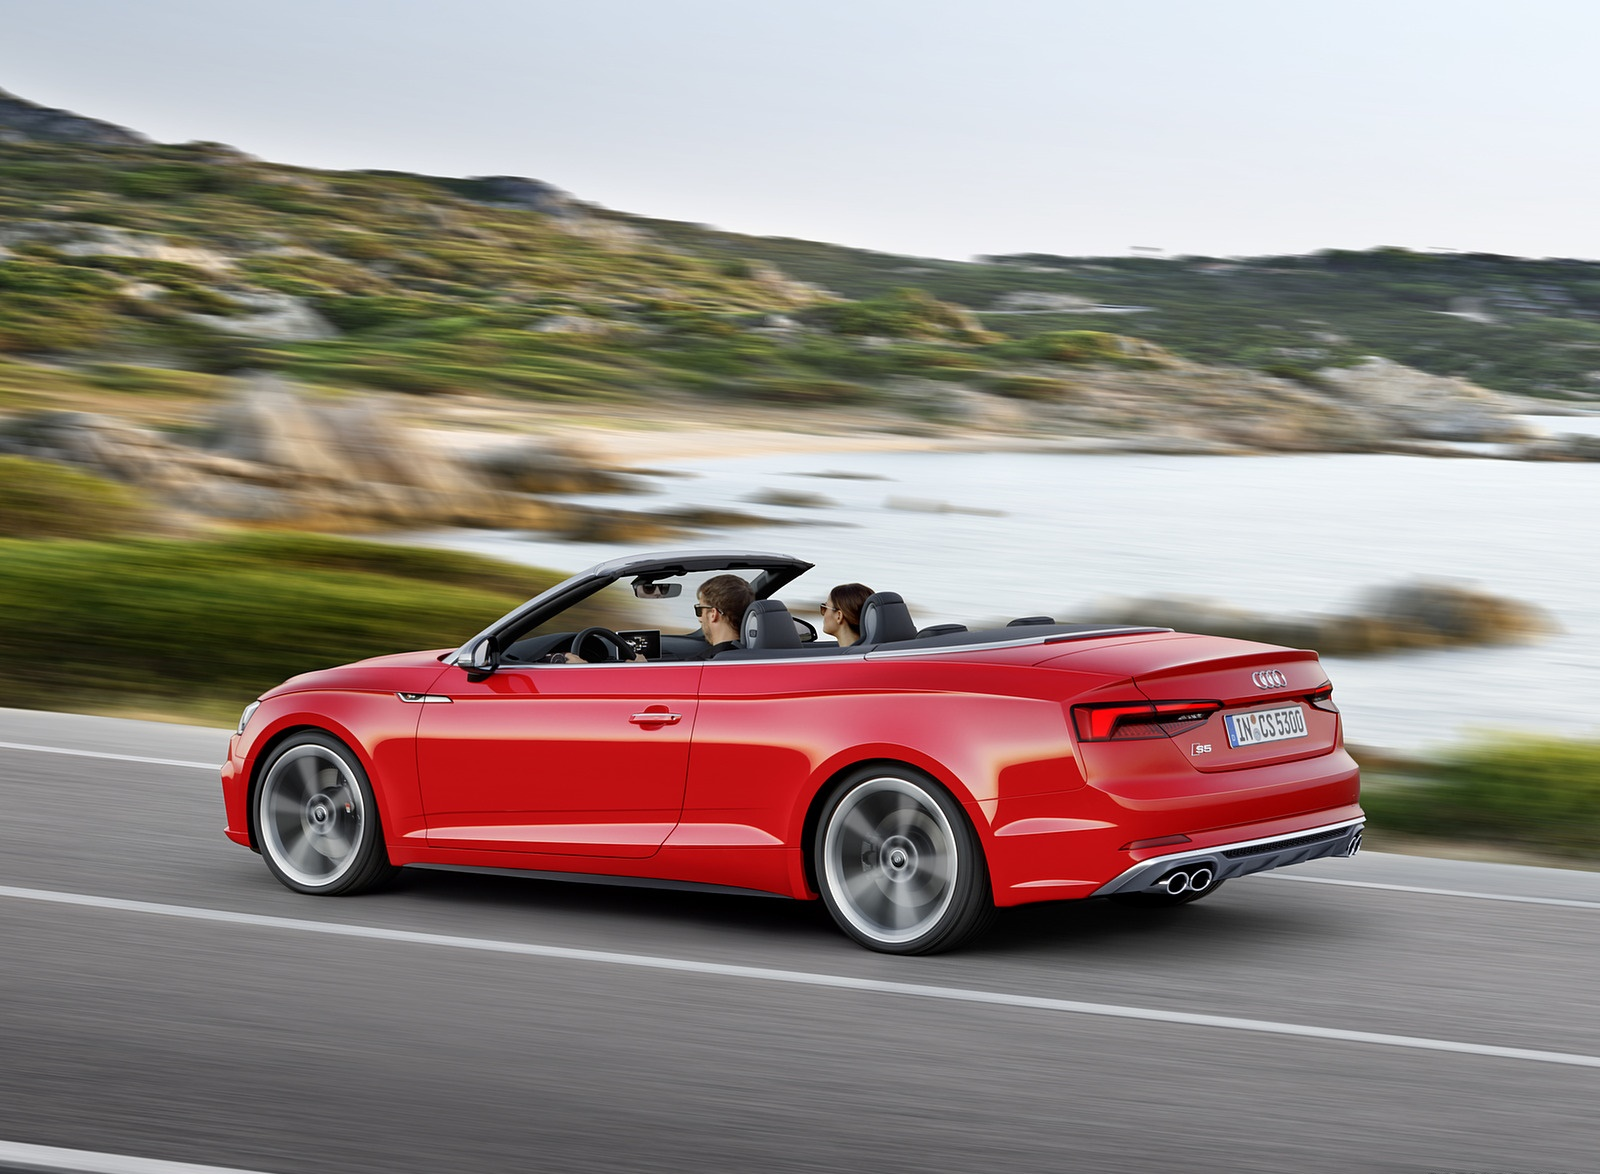 2018 Audi S5 Cabriolet (Color: Misano Red) Side Wallpaper (10)